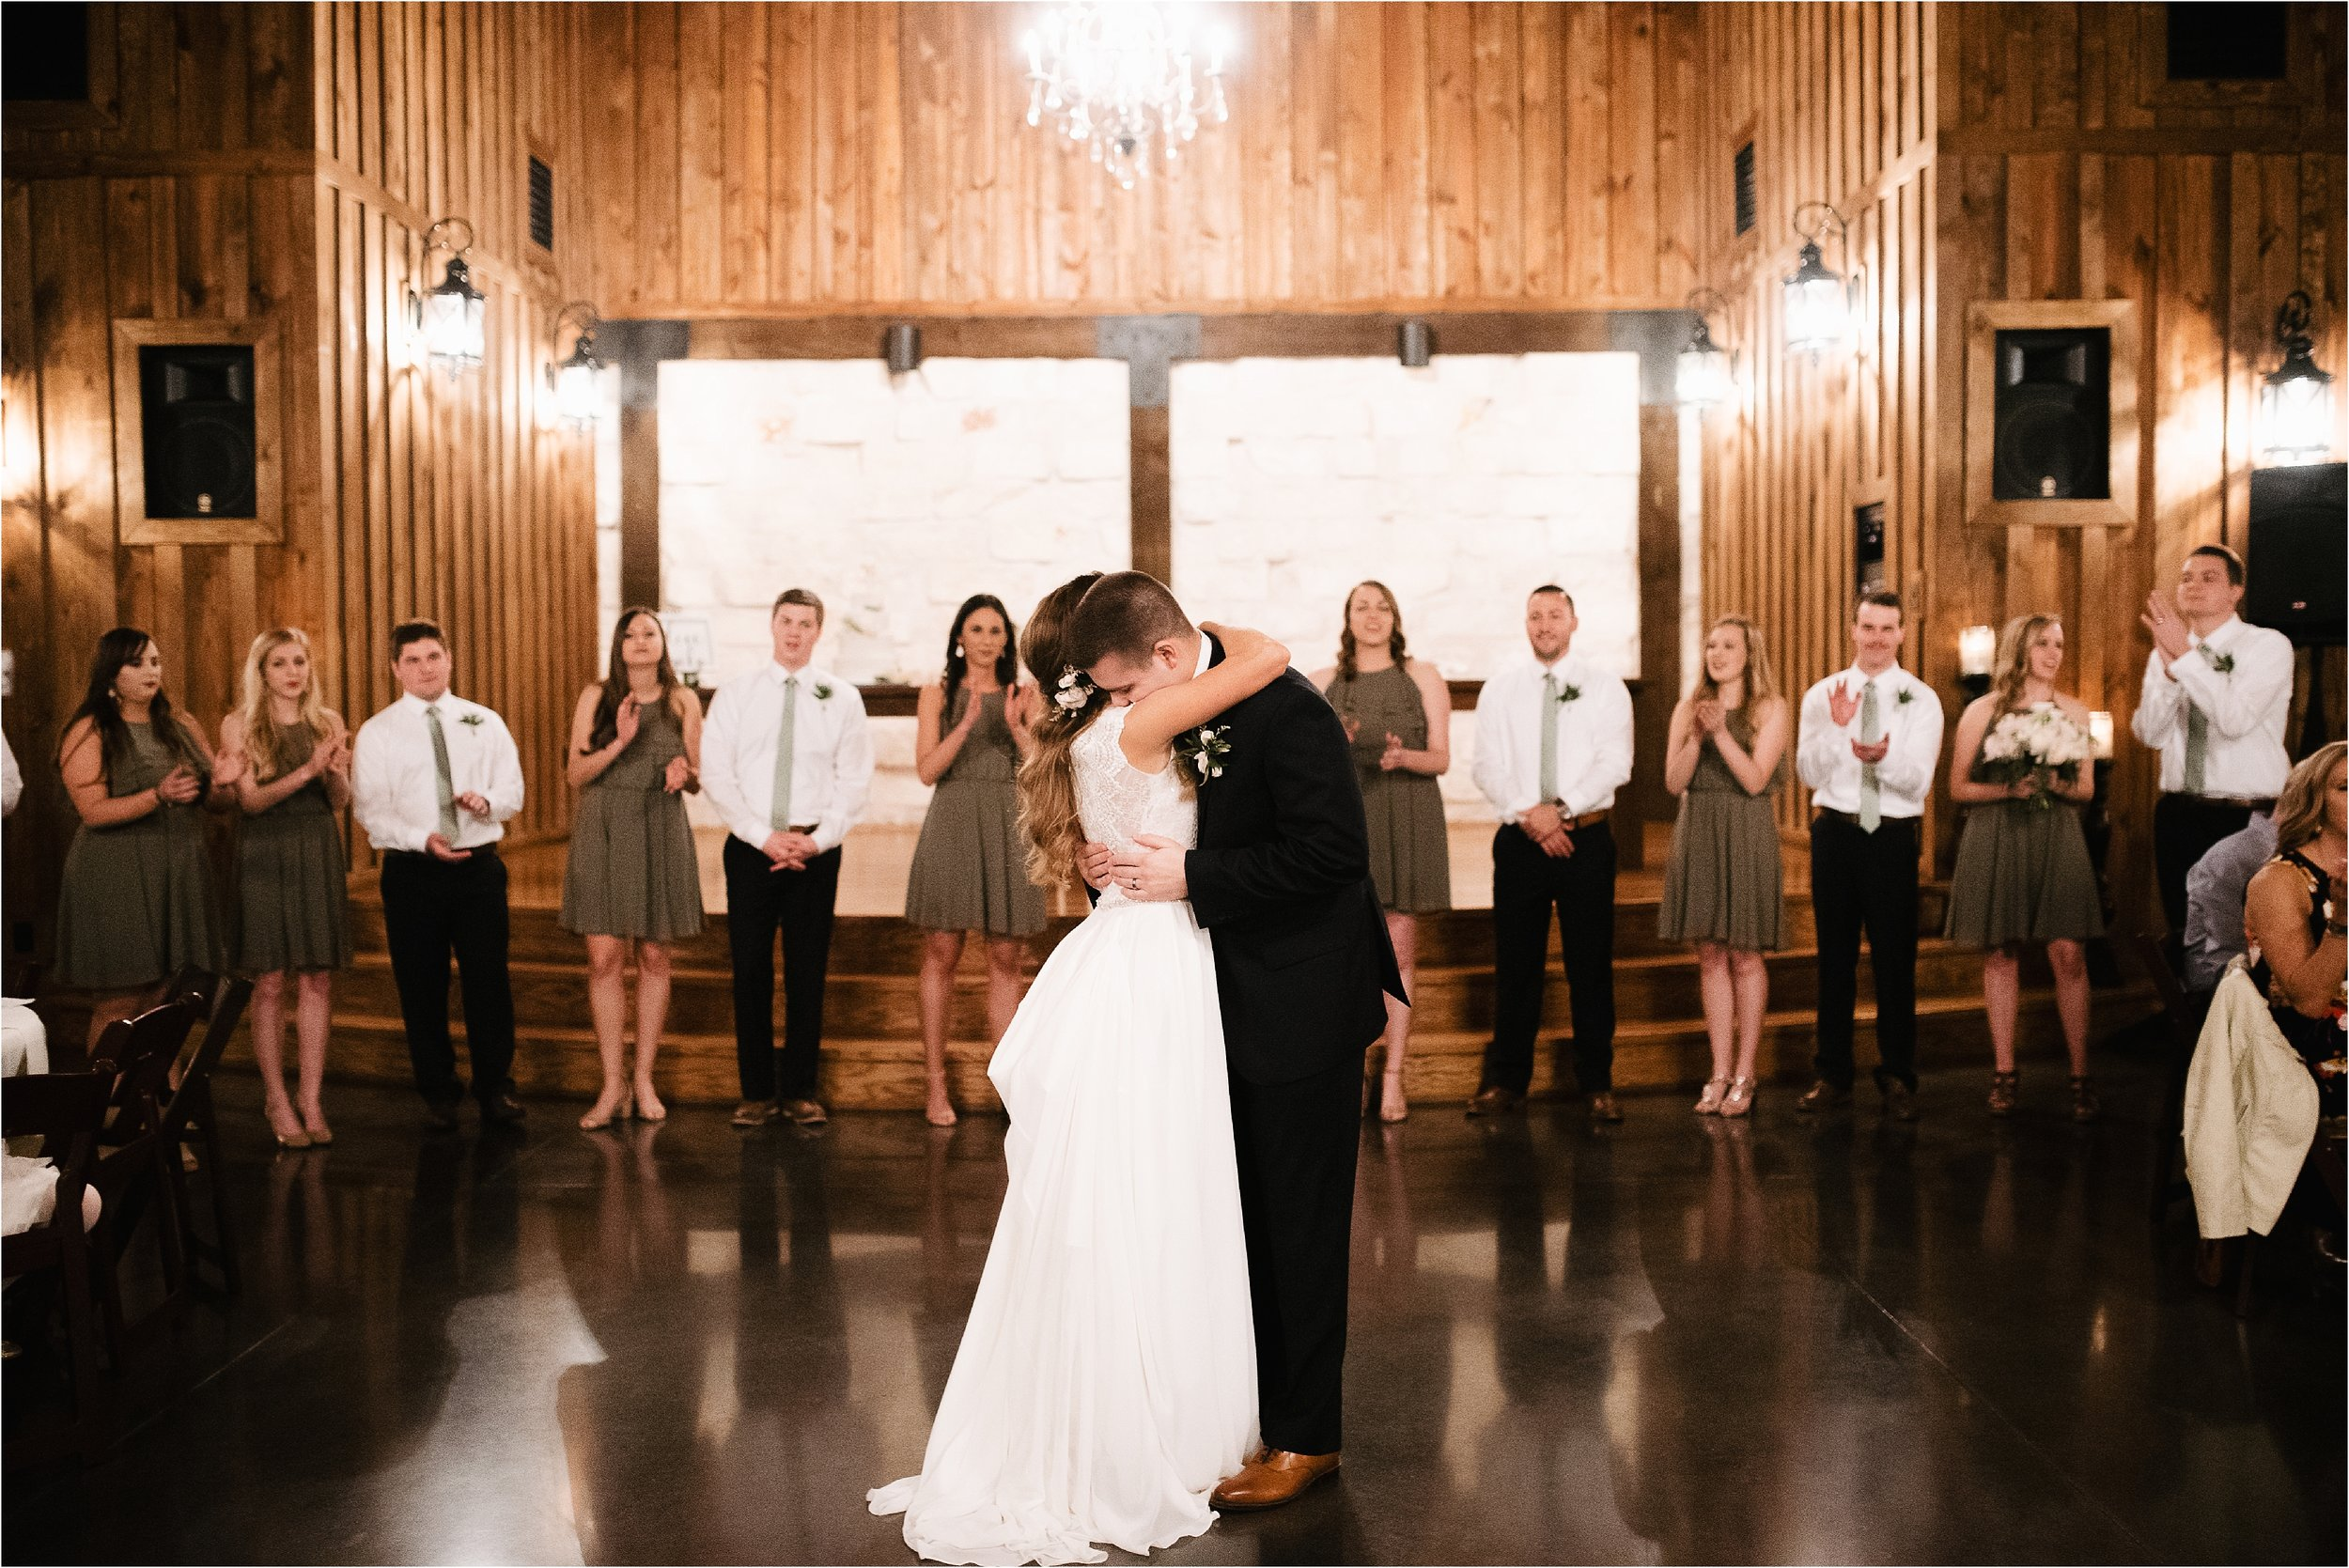 oklahoma wedding photographer reception family friends hugs congratulations best wishes toasts